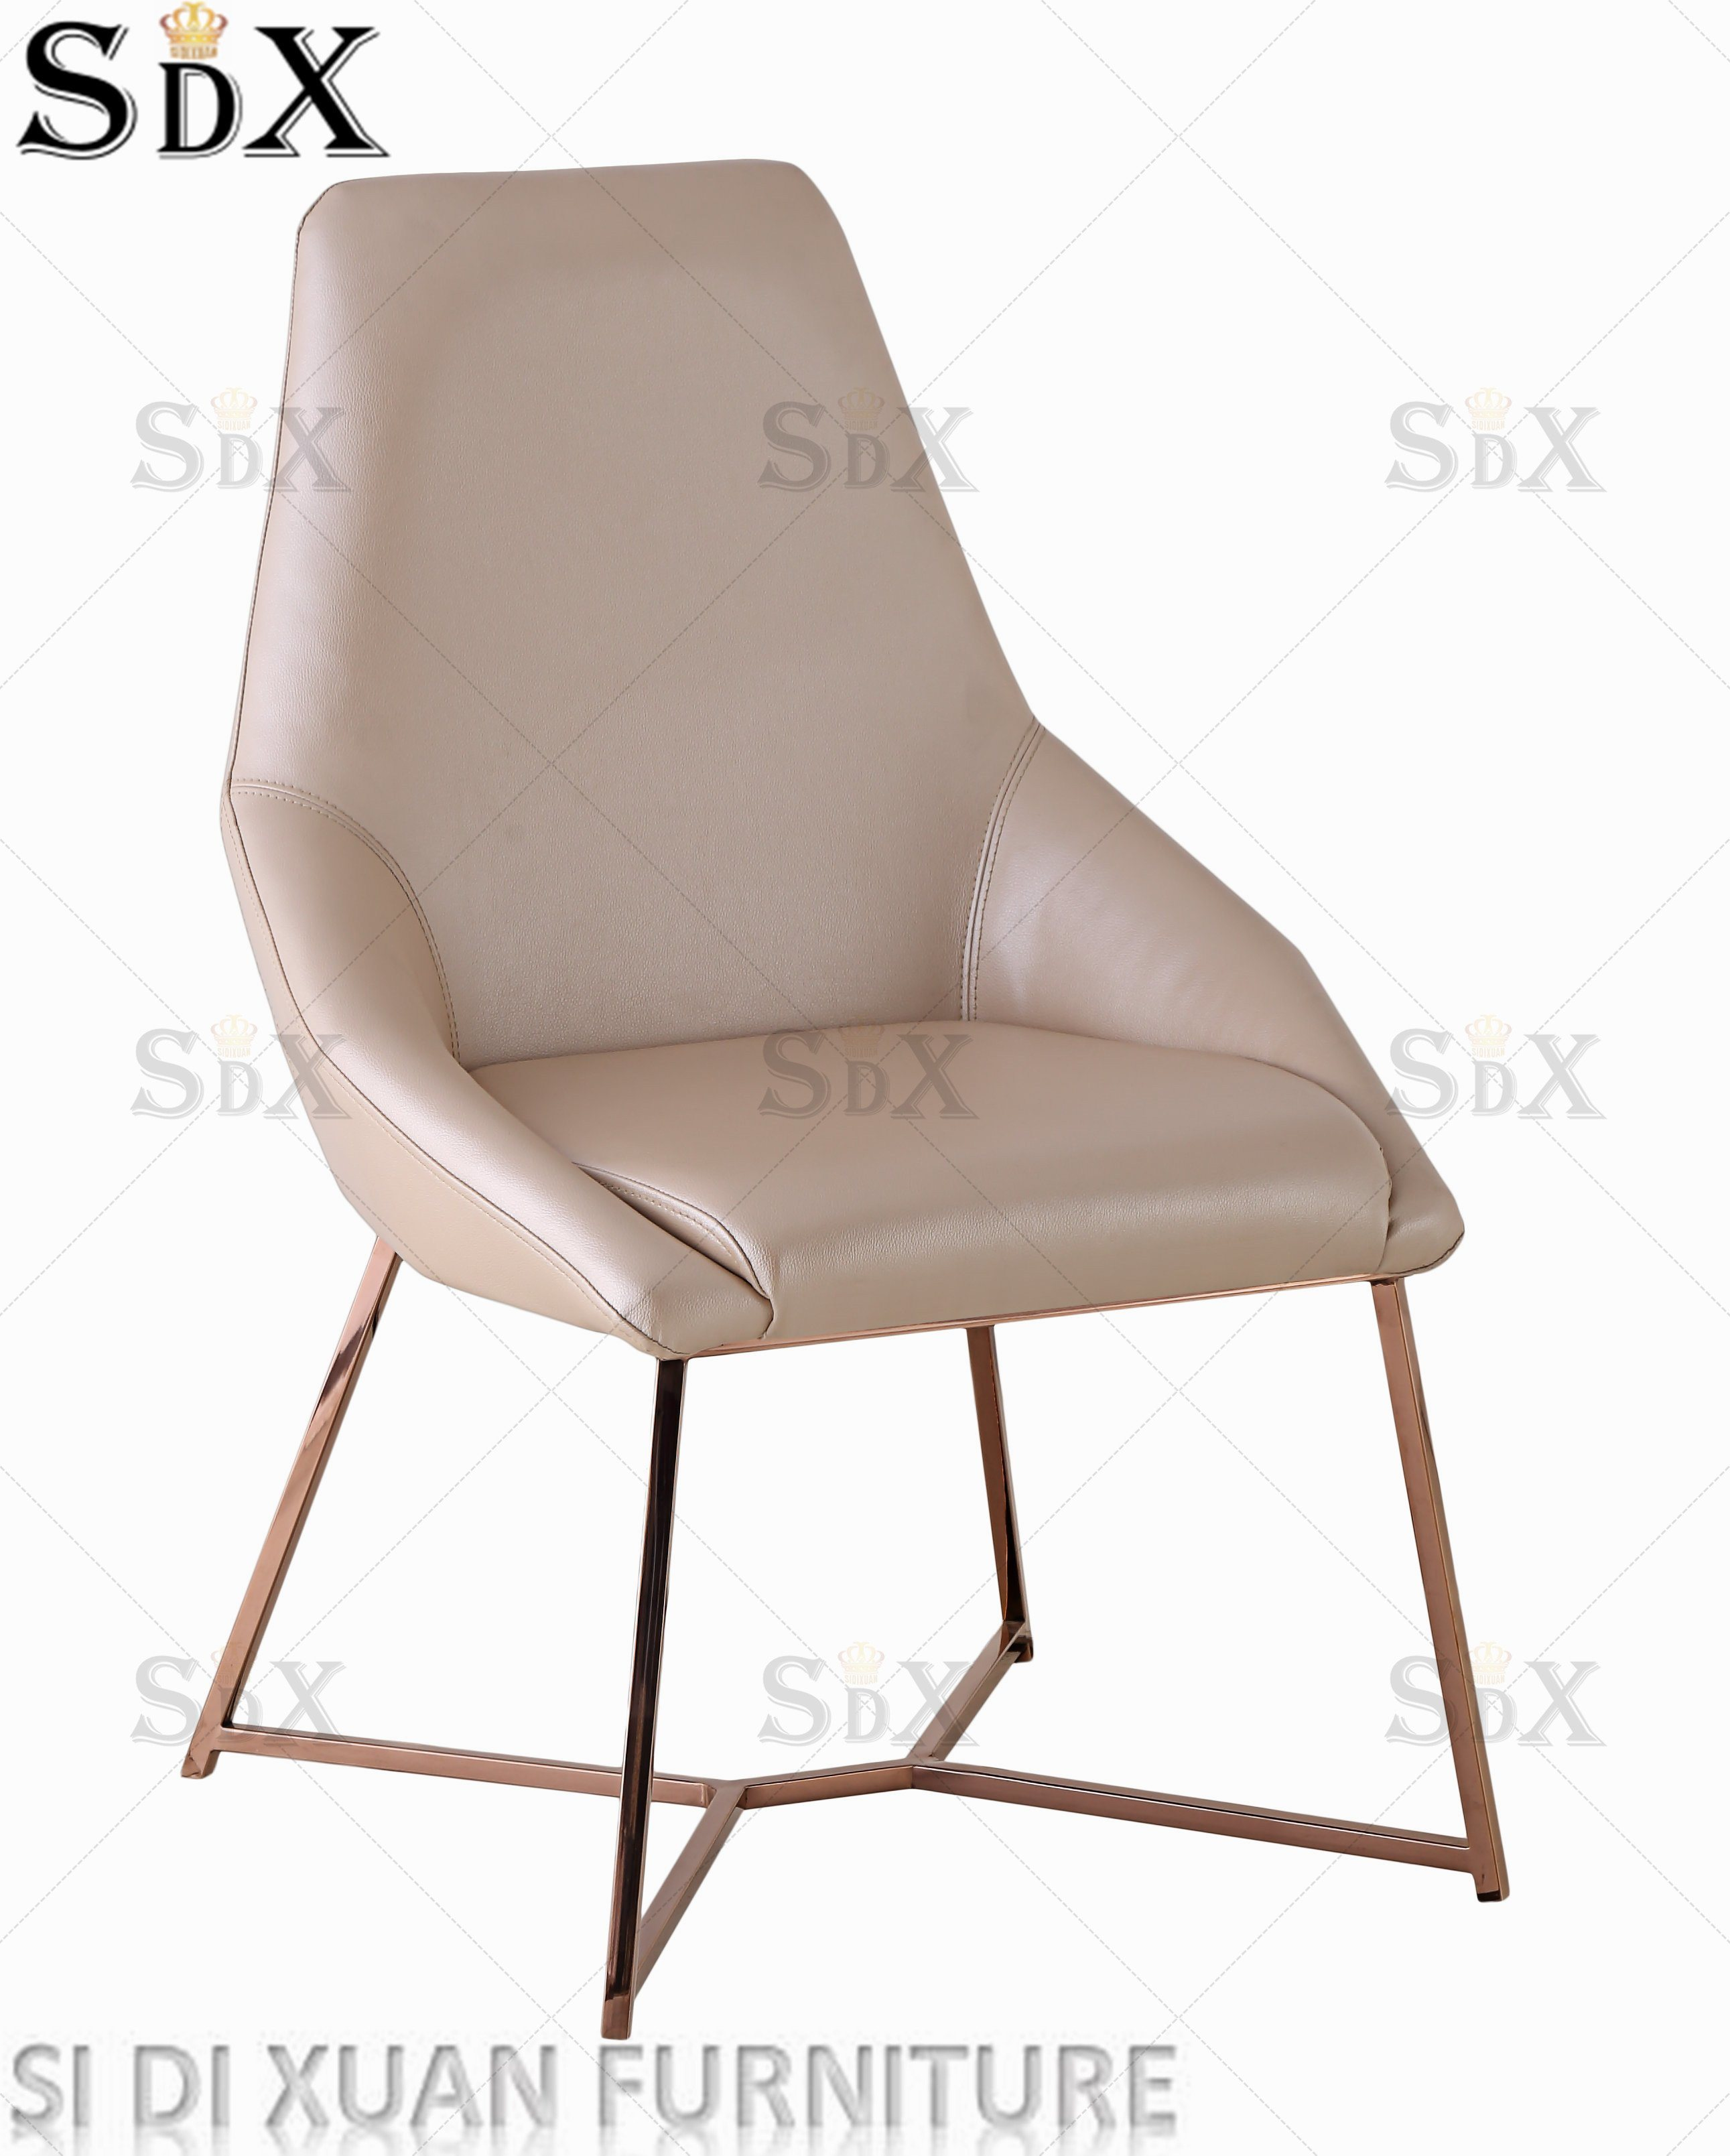 Hot Item Modern Simple Home Living Room Furniture Leisure Lounge Chair Stainless Steel Relax Chair